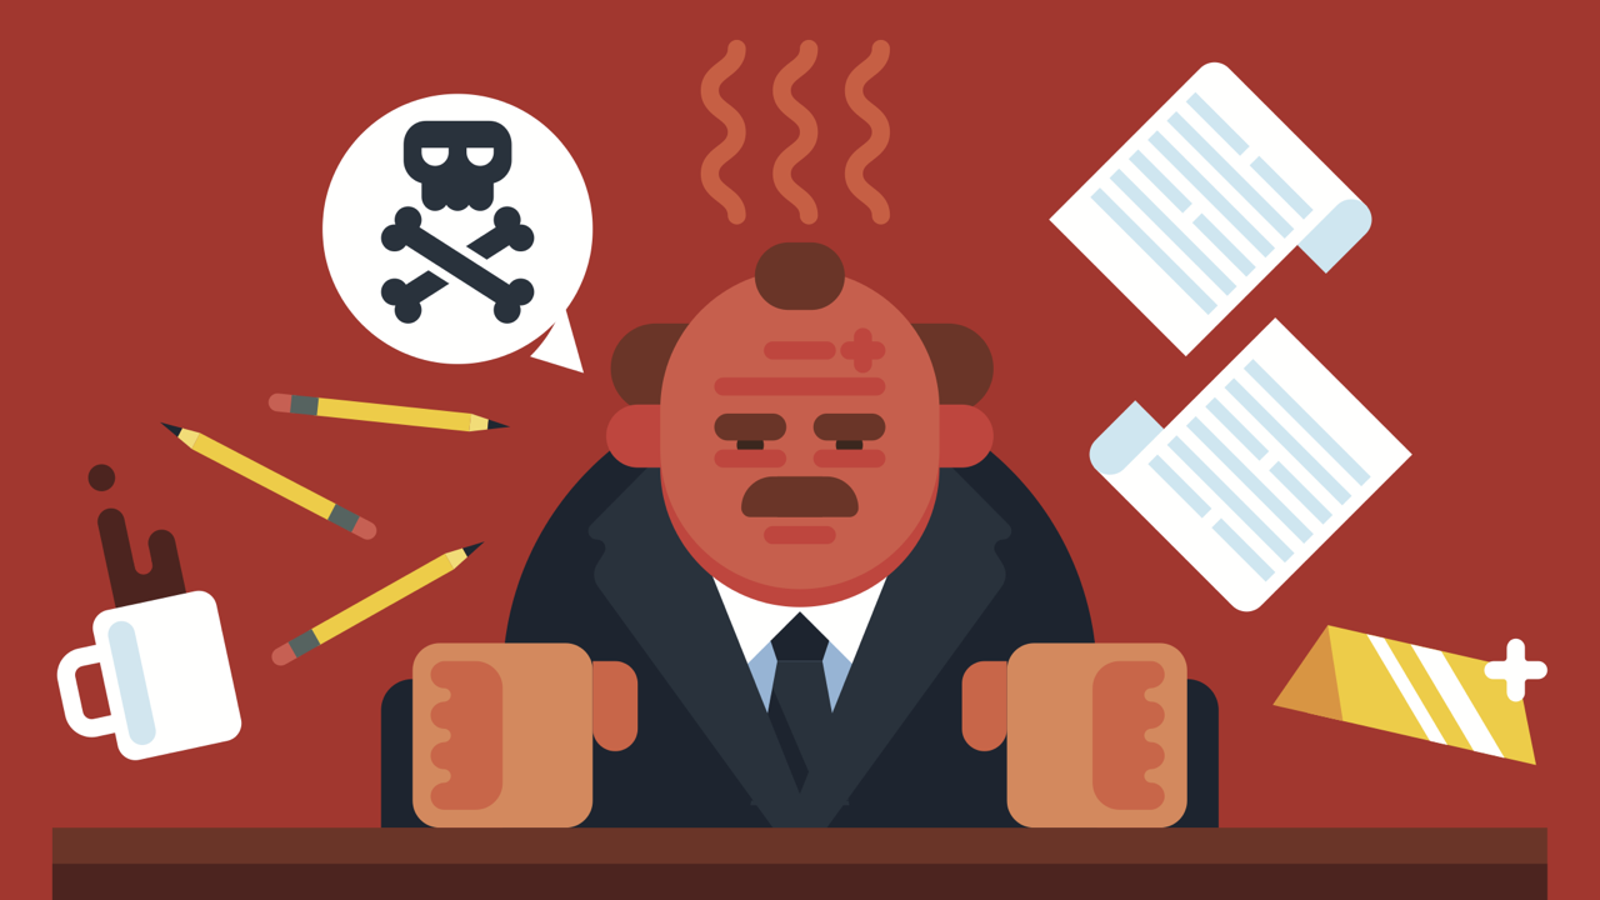 A Four Step Plan For Dealing With An Angry Coworker Think I Pissed Him Off Pics